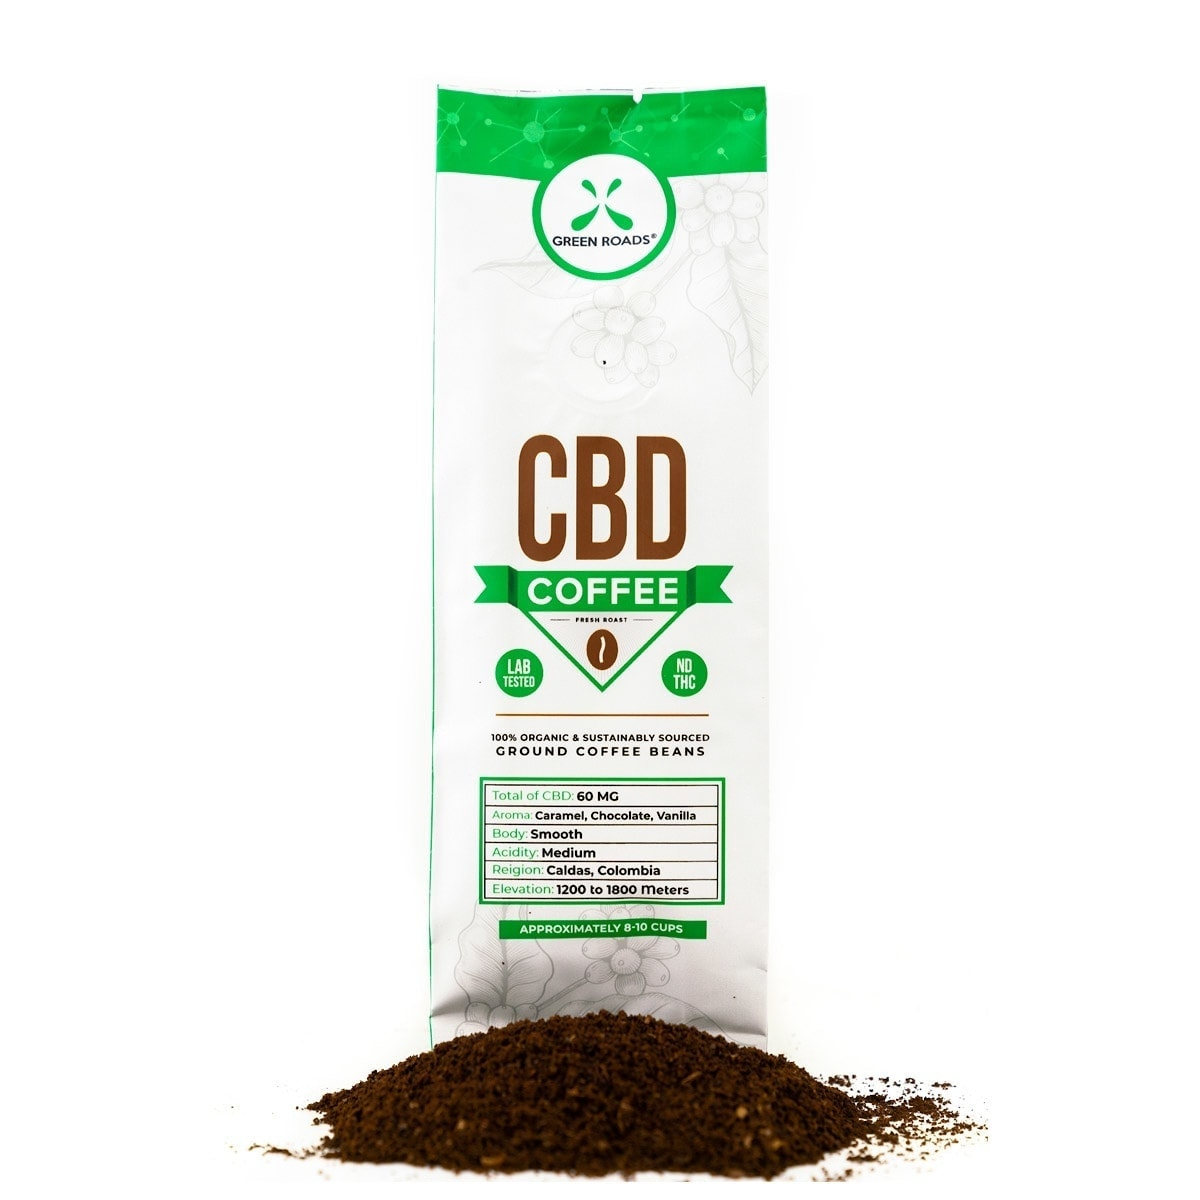 green-roads-cbd-coffee-8-10-cups-2oz-60mg-of-cbd